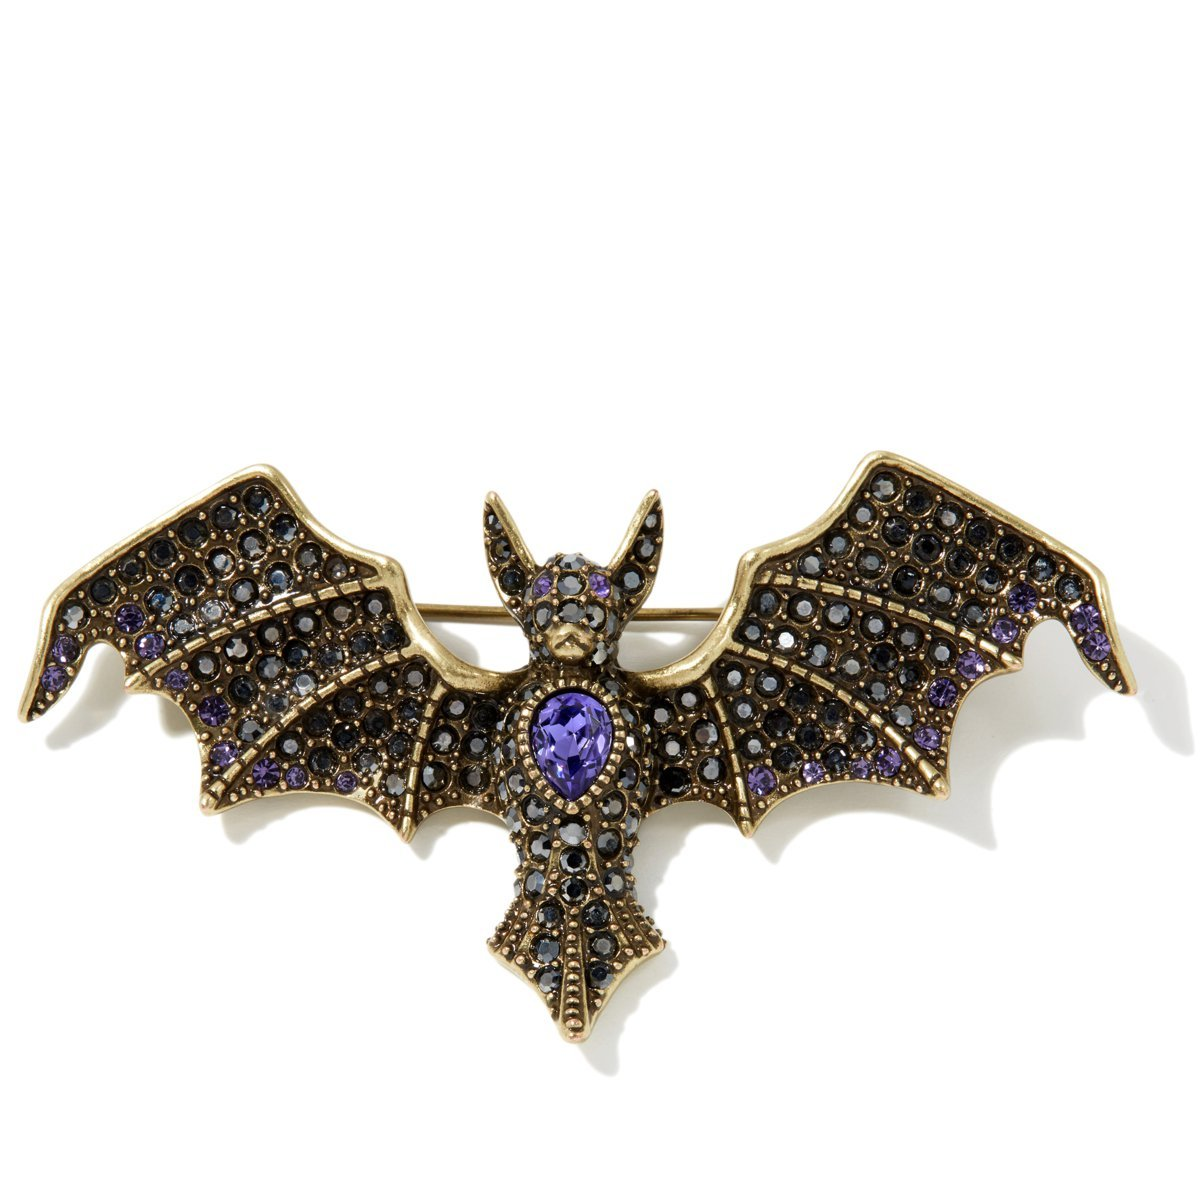 Heidi Daus BATTY FOR YOU PIN EXQUISITE SWAROVSKI CRYSTALS MUST HAVE!